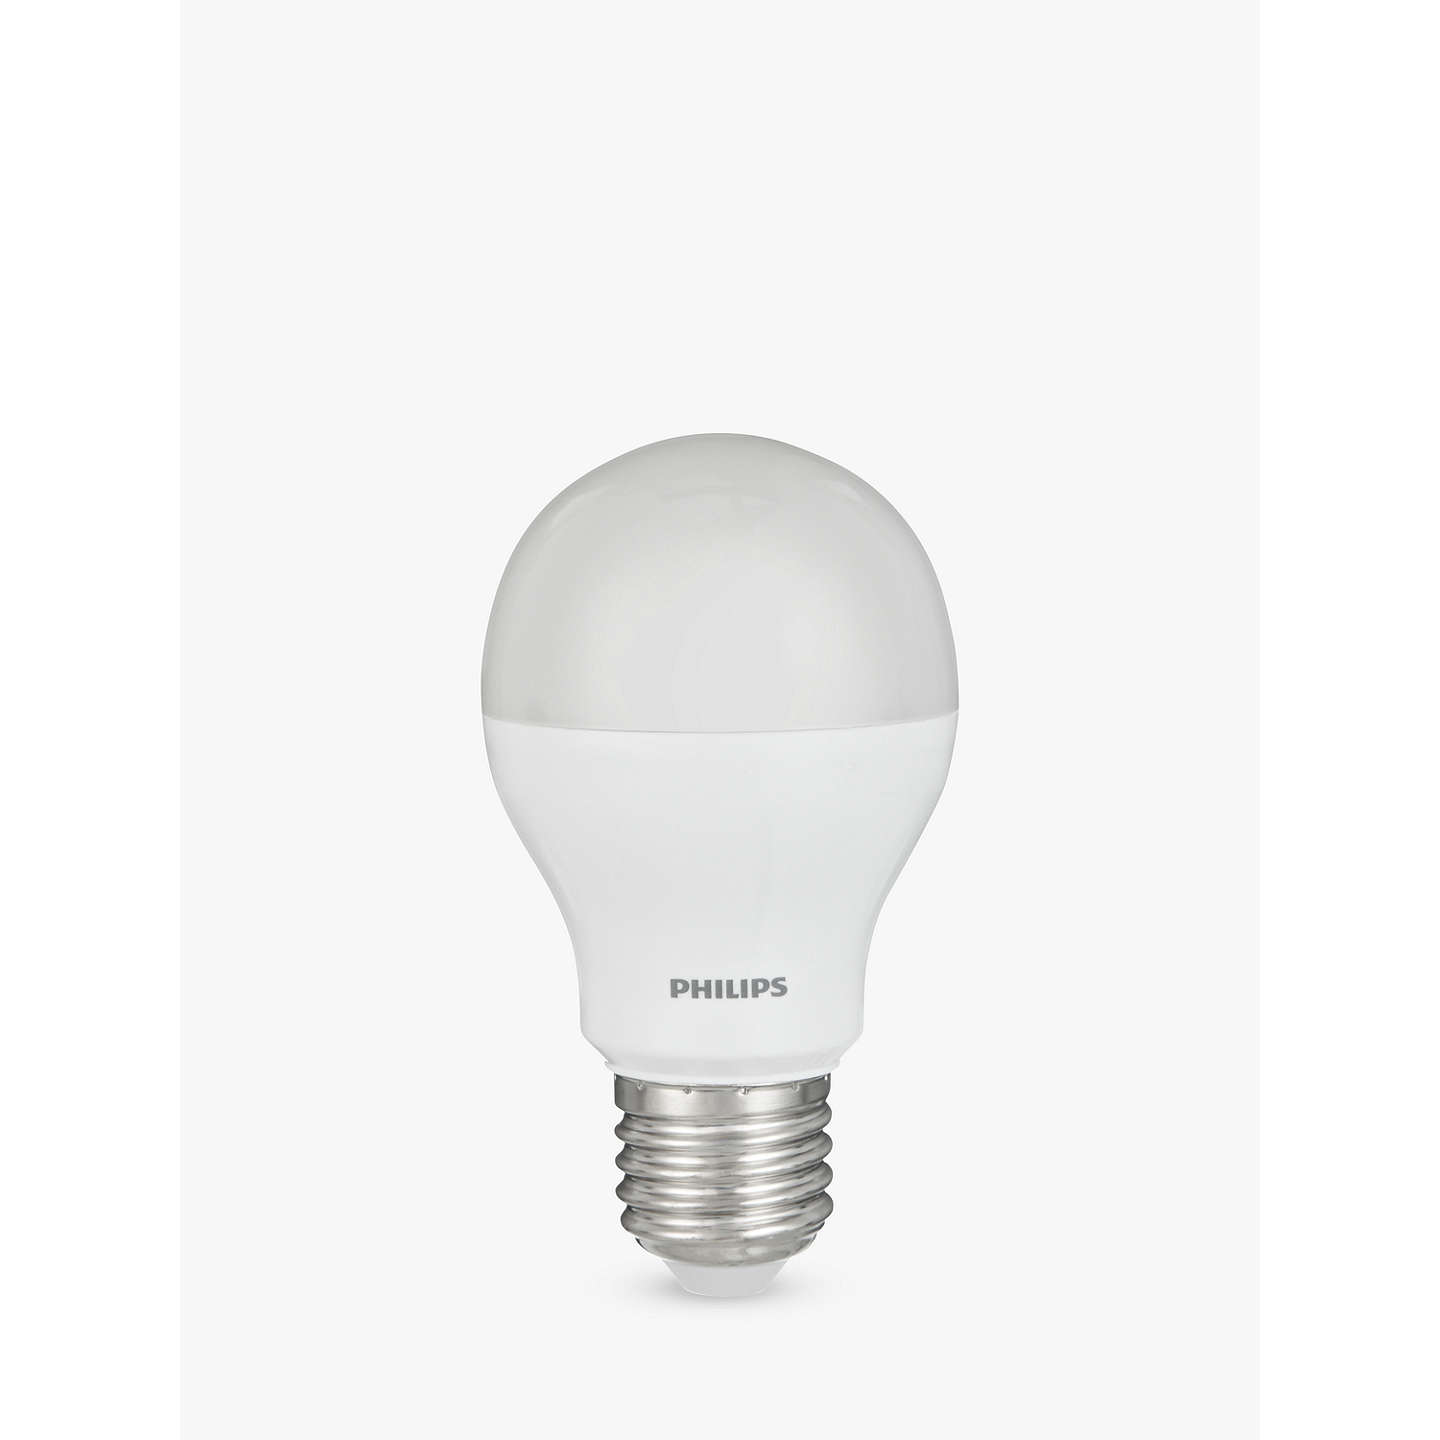 walmart great ip com bulb light led equivalent soft value bulbs count white can